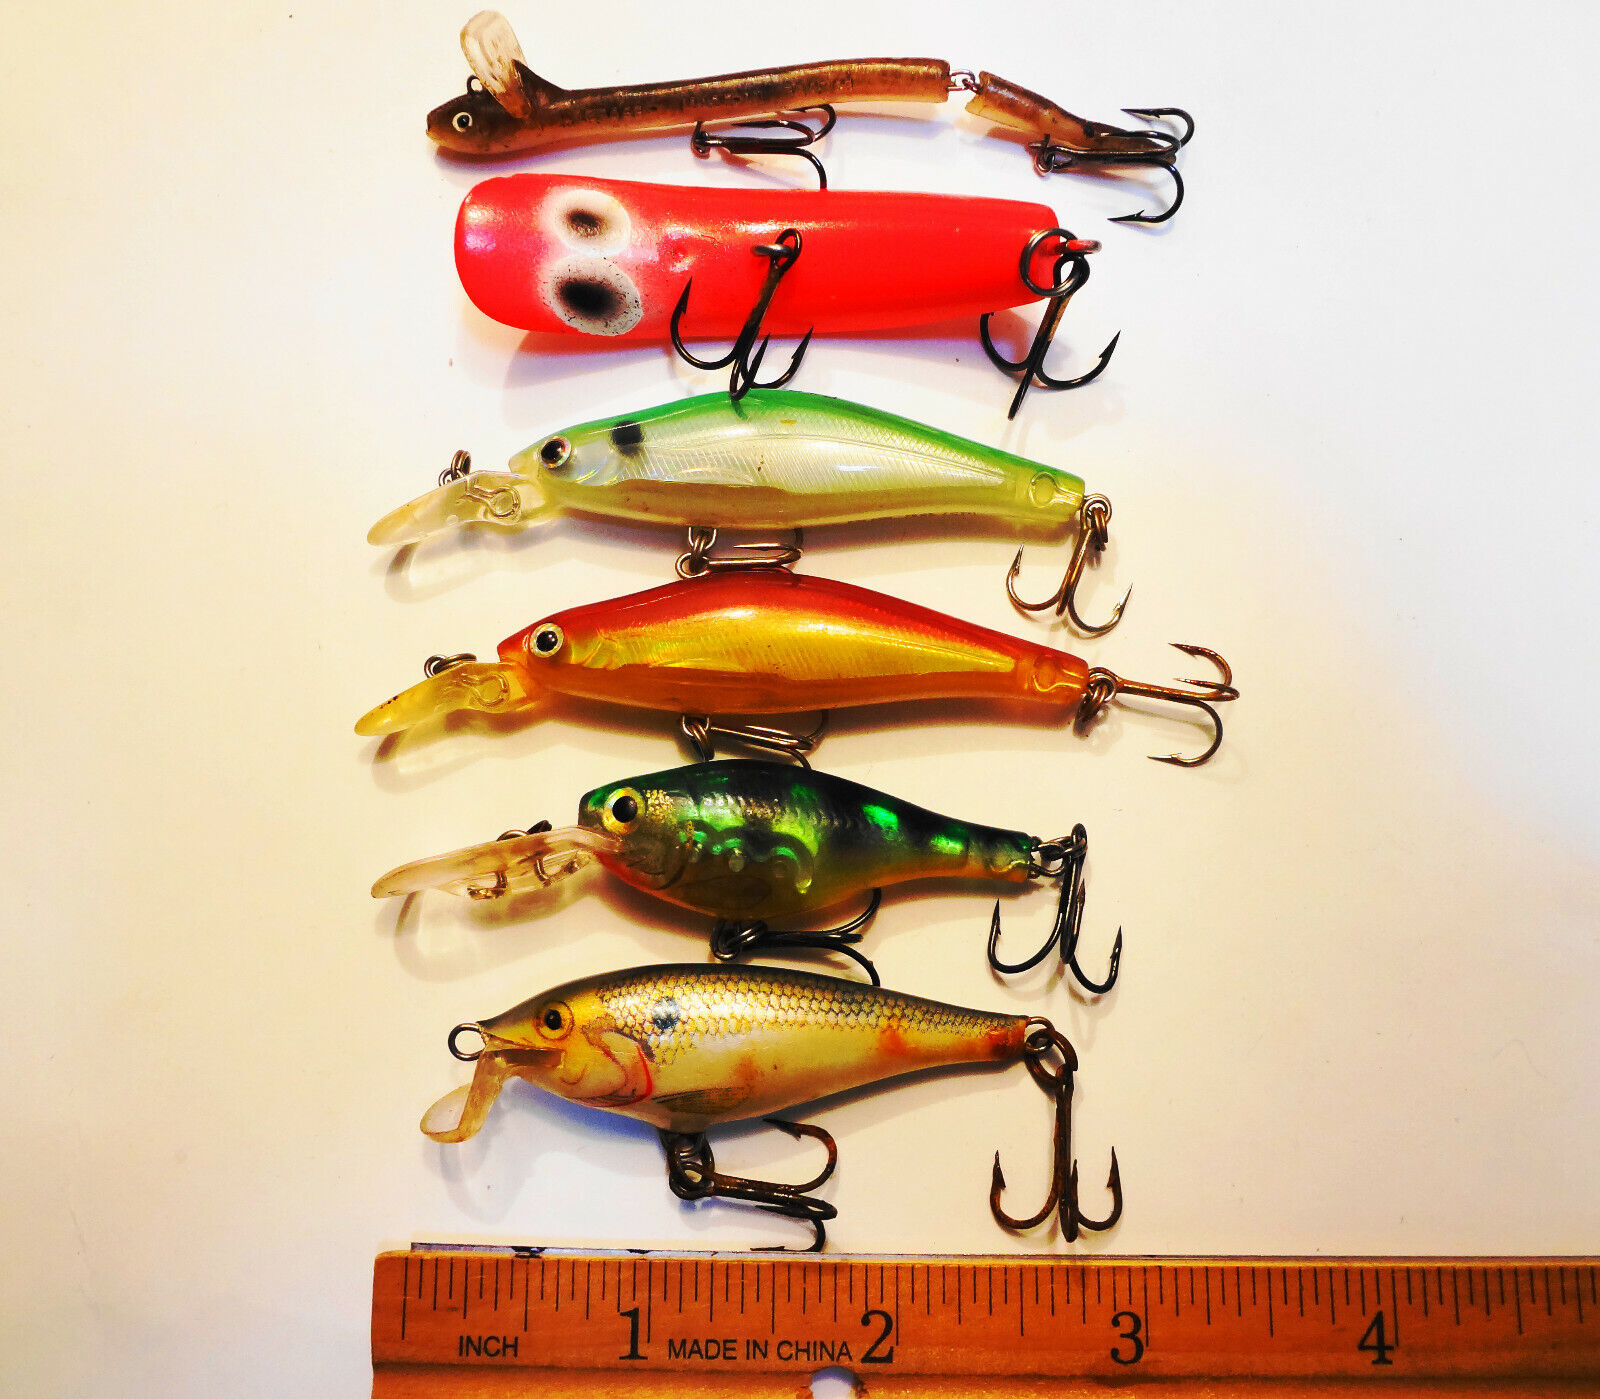 Crankbait Lures - Very Nice Condition - Including Eelet Lure - $12.99